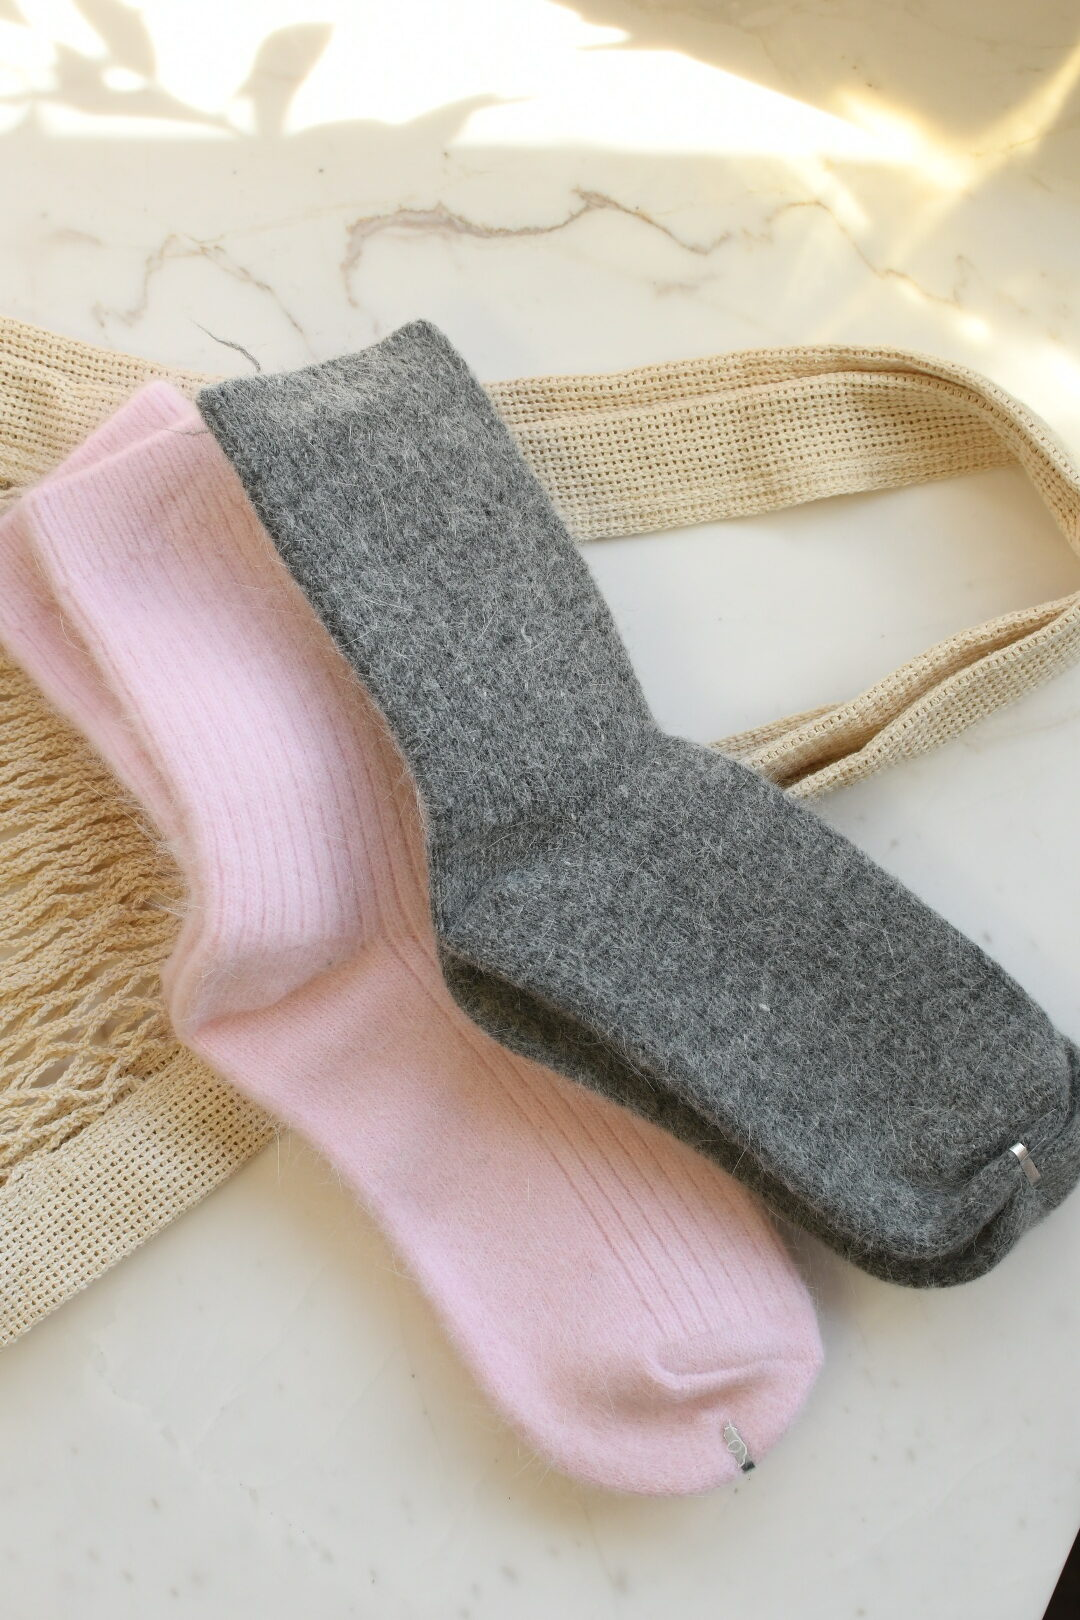 California Products by popular Monterey life and style blog, Haute Beauty Guide: image of cashmere socks next to a mesh shopping bag.